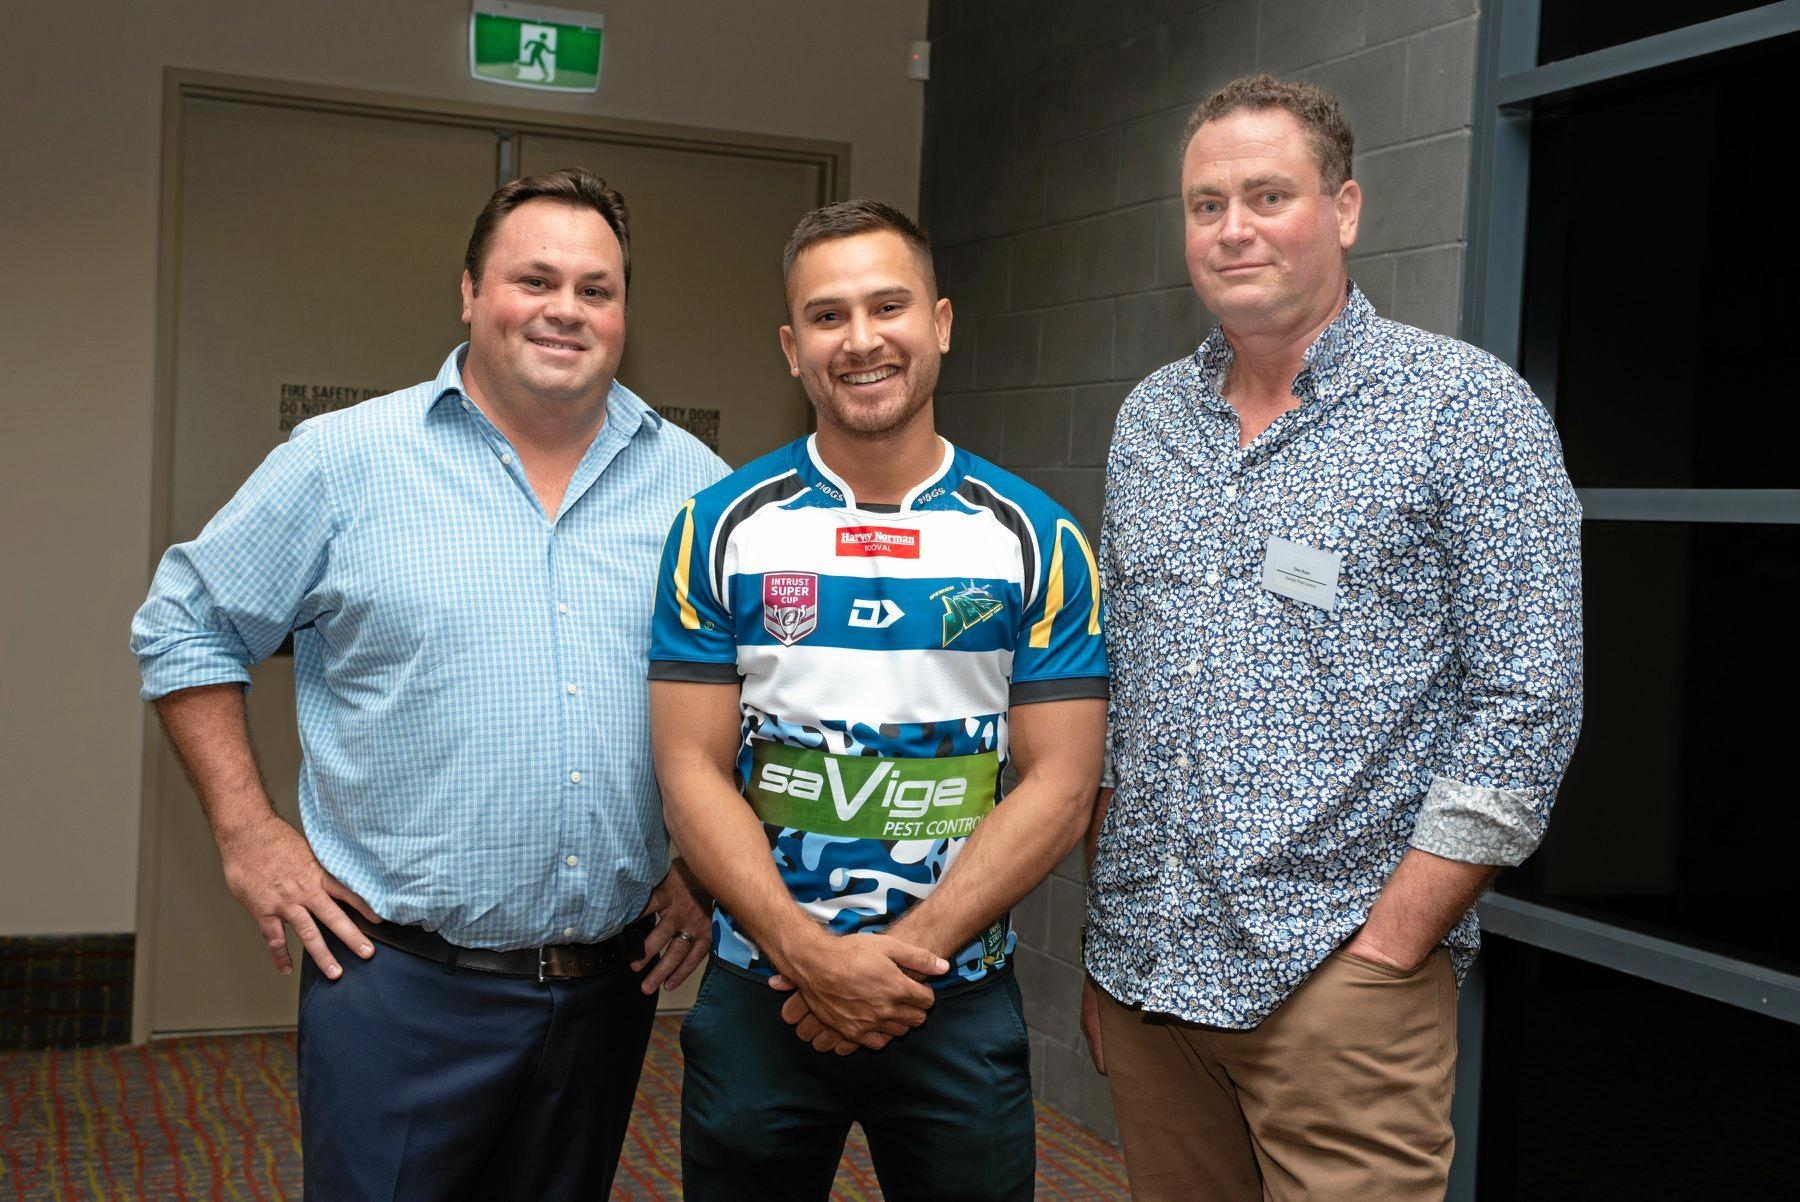 Bill Savige and Des Ryan with Marmin Barba at the Ipswich Jets' season launch.